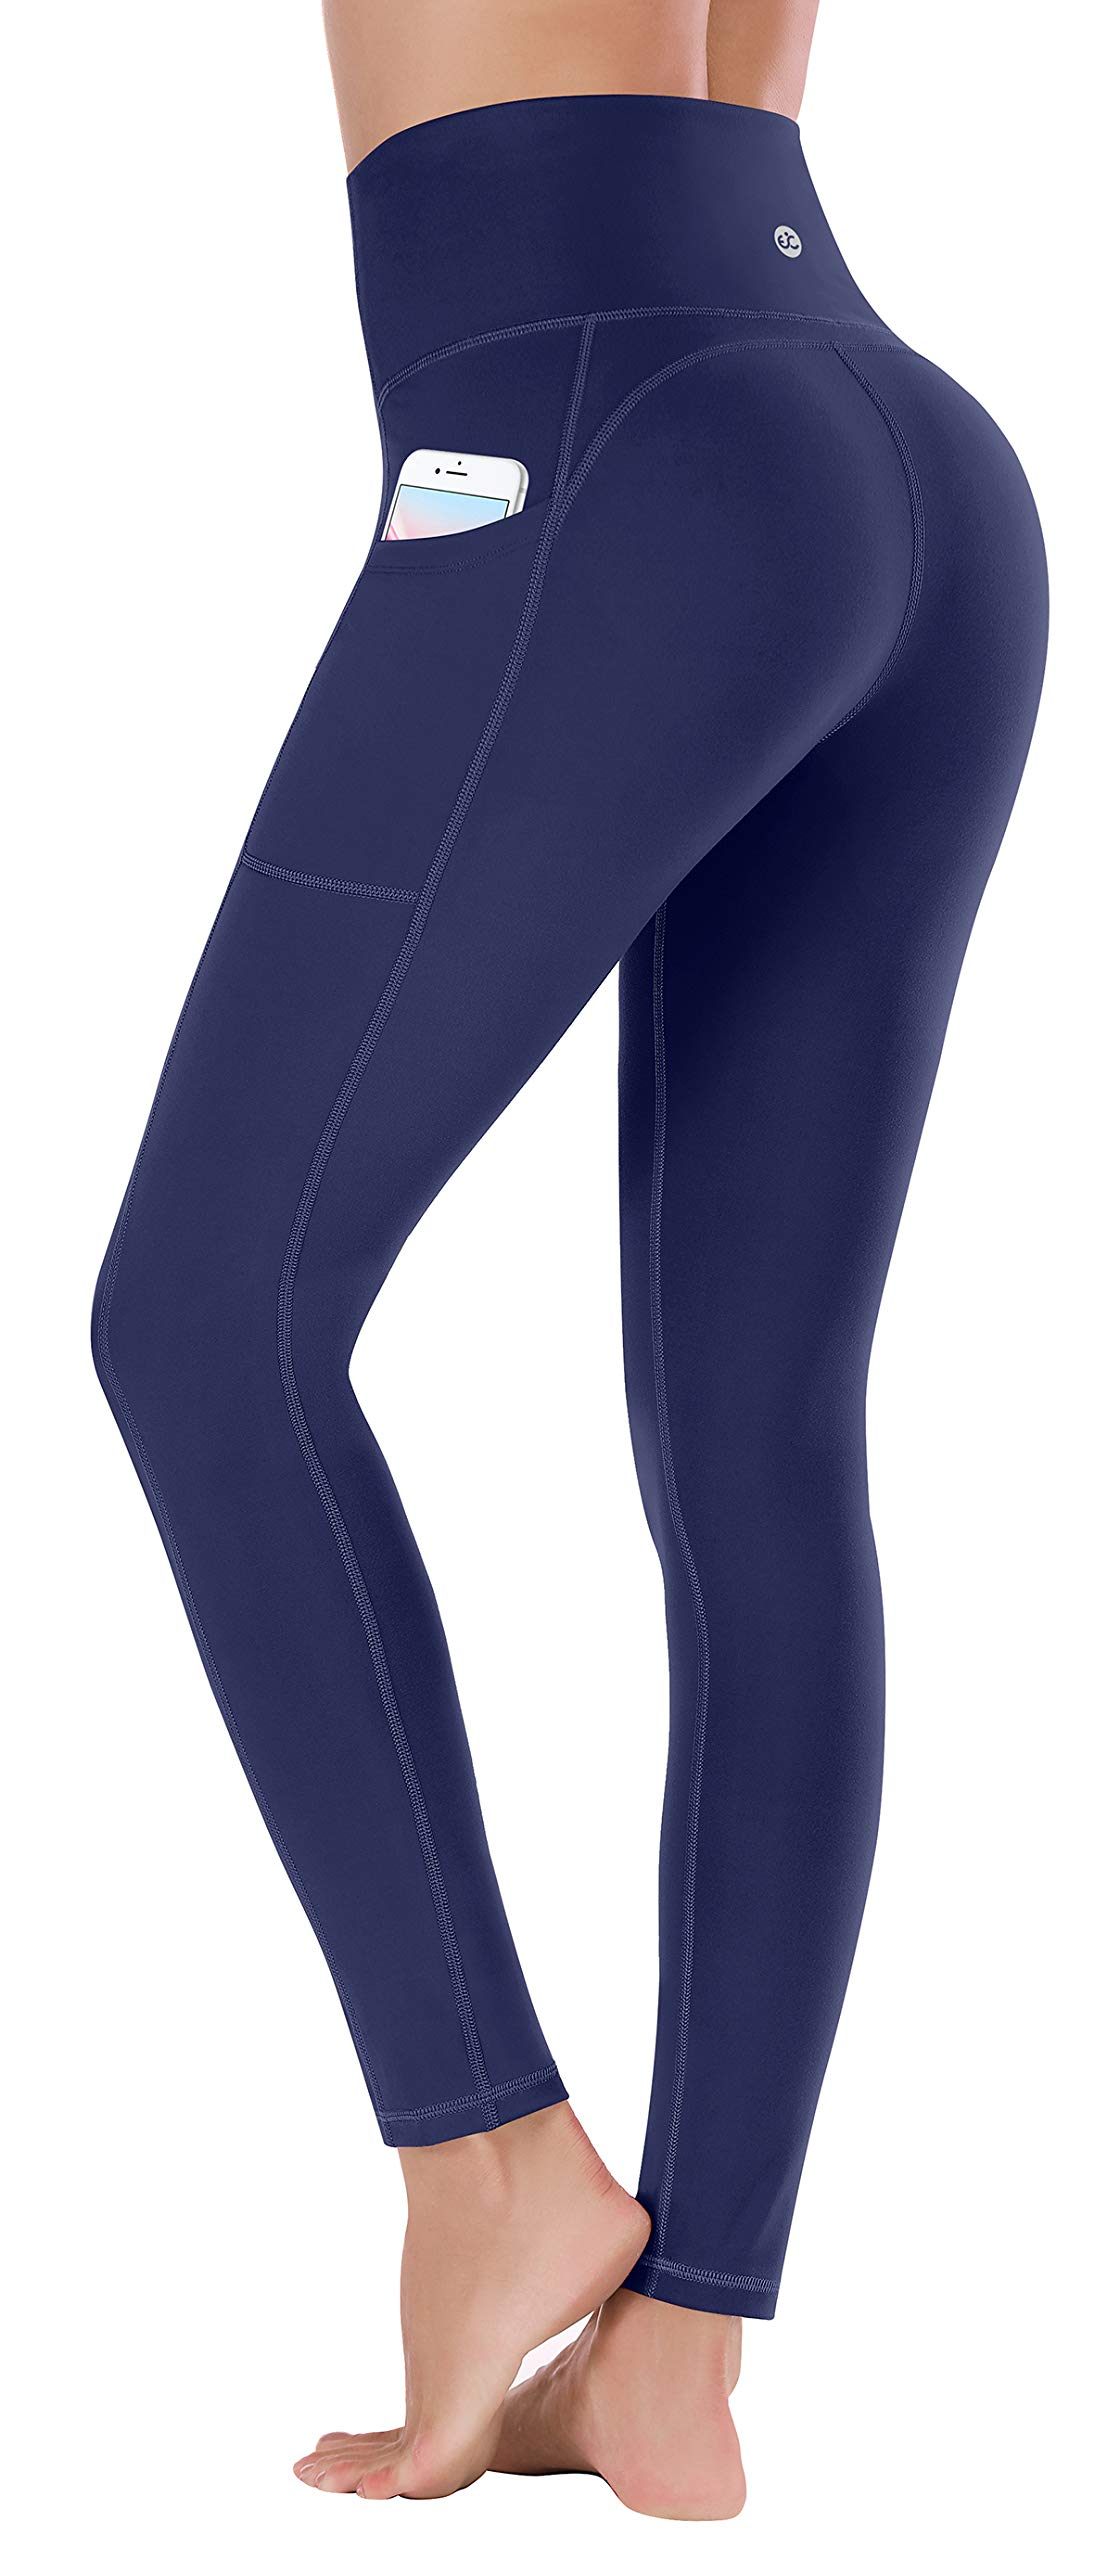 Ewedoos Women's Yoga Pants with Pockets - Leggings with Pockets, High Waist Tummy Control Non See-Through Workout Pants (EW320 NAVY, Medium) by Ewedoos